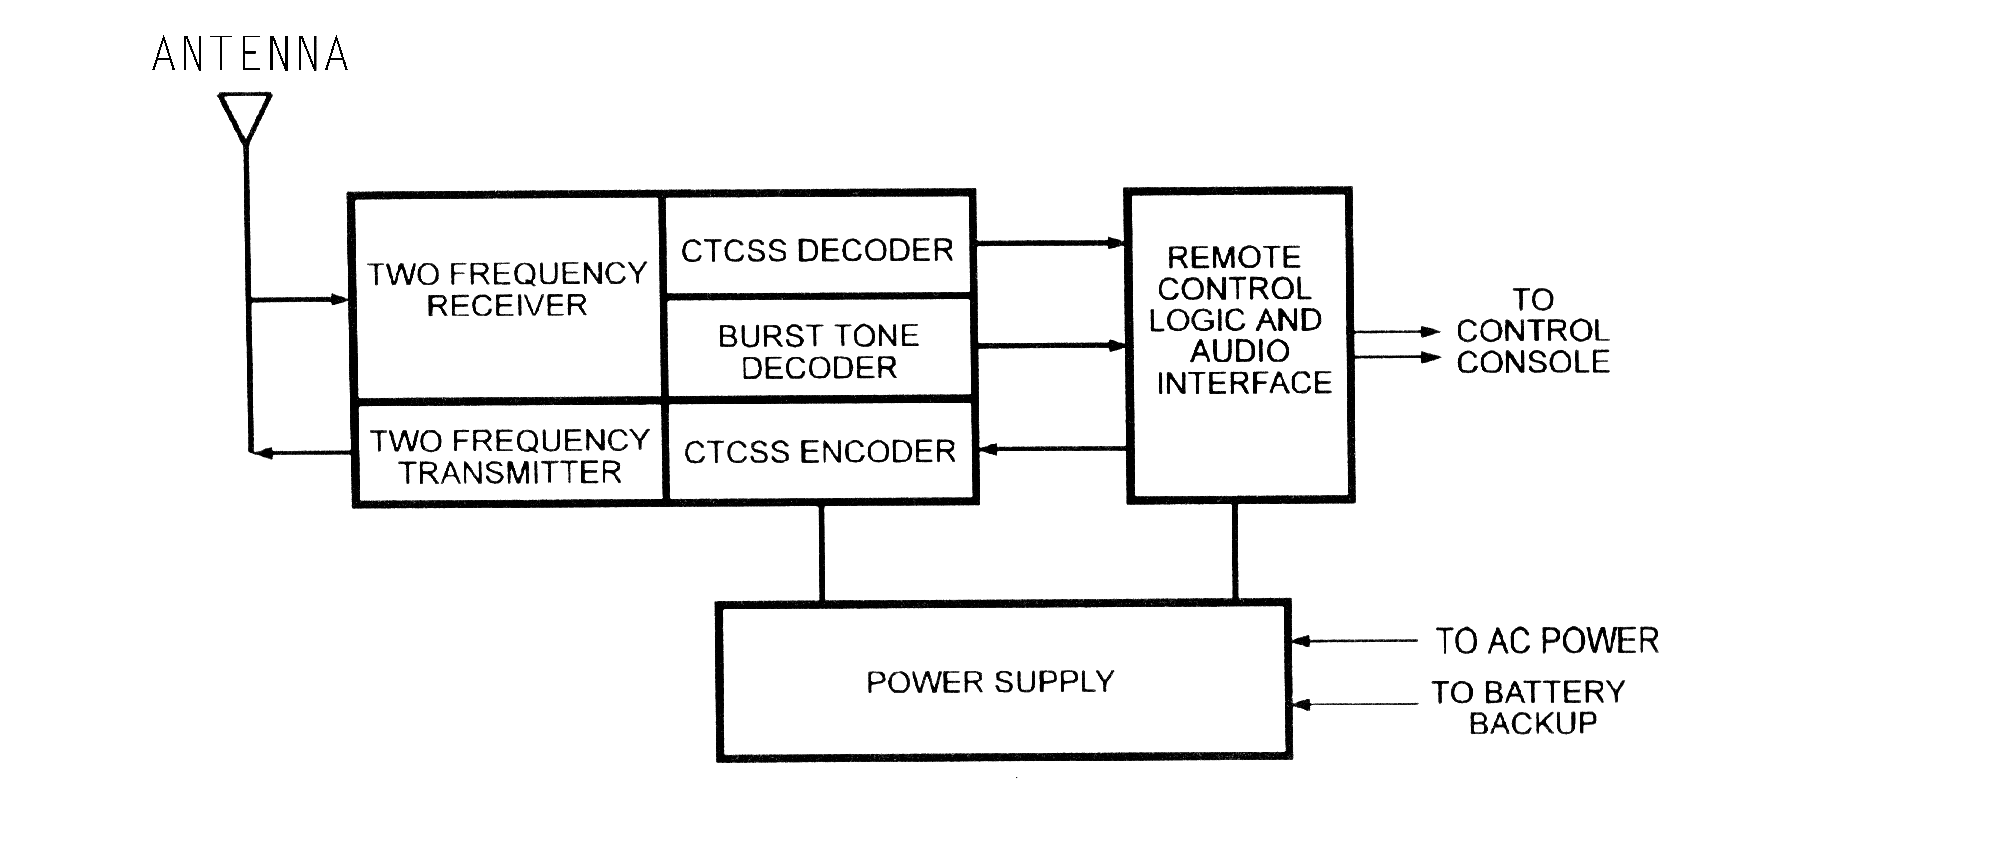 File:Base station 2 channel block diagram.png